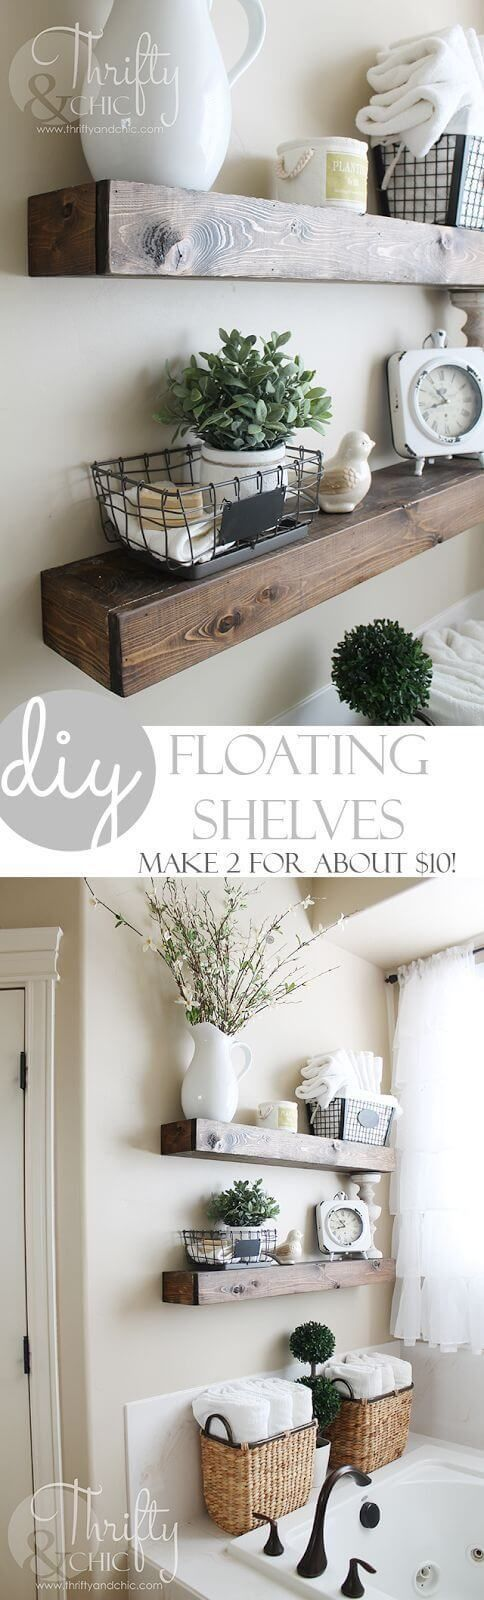 DIY Floating Shelves by Thrifty and Chic DIY Farmhouse Decor Projects for Fixer Upper Style